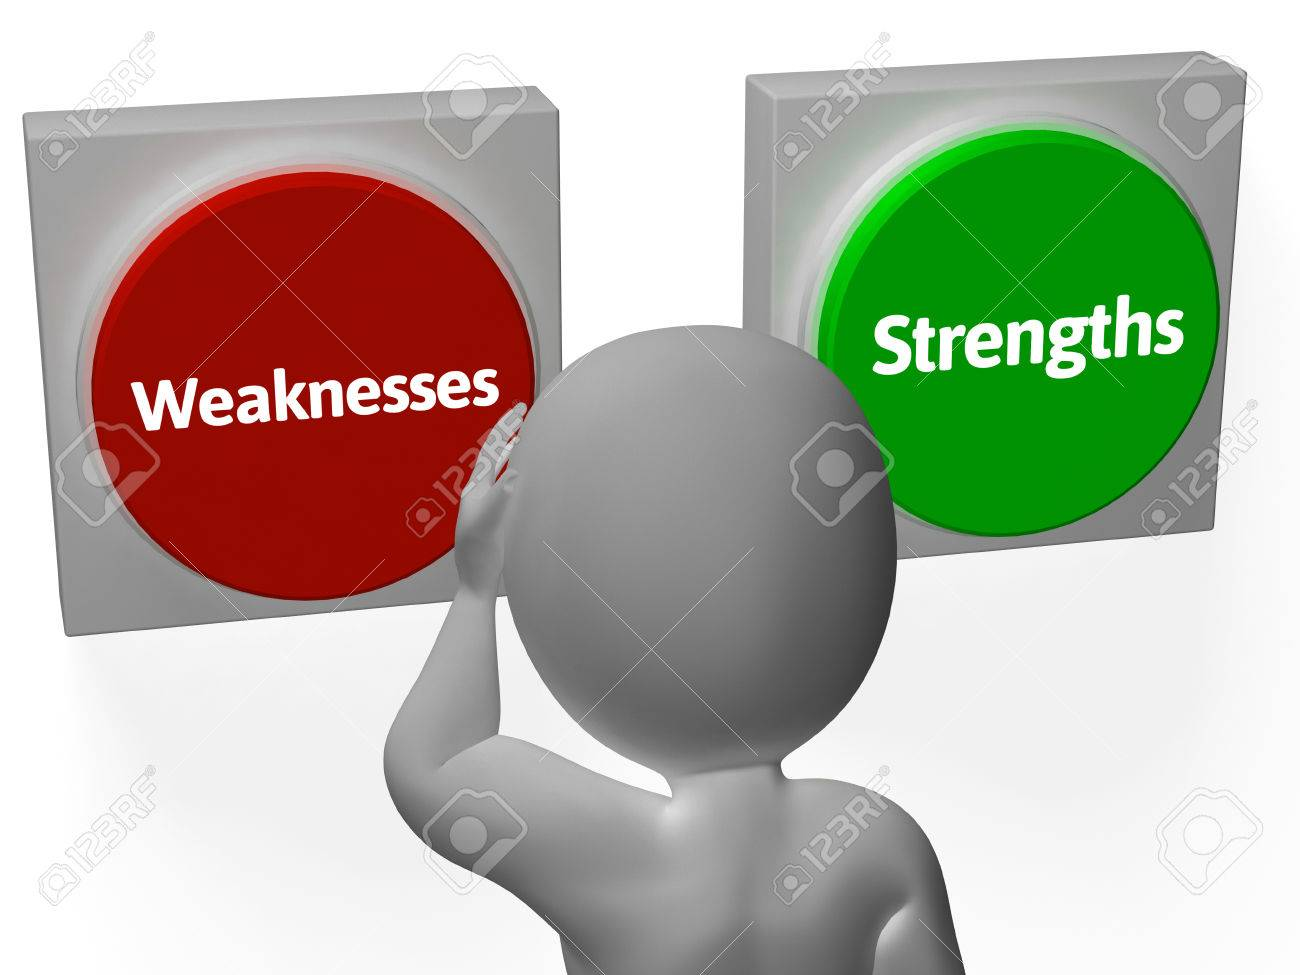 weaknesses strengths buttons showing analysis or performance stock stock photo weaknesses strengths buttons showing analysis or performance